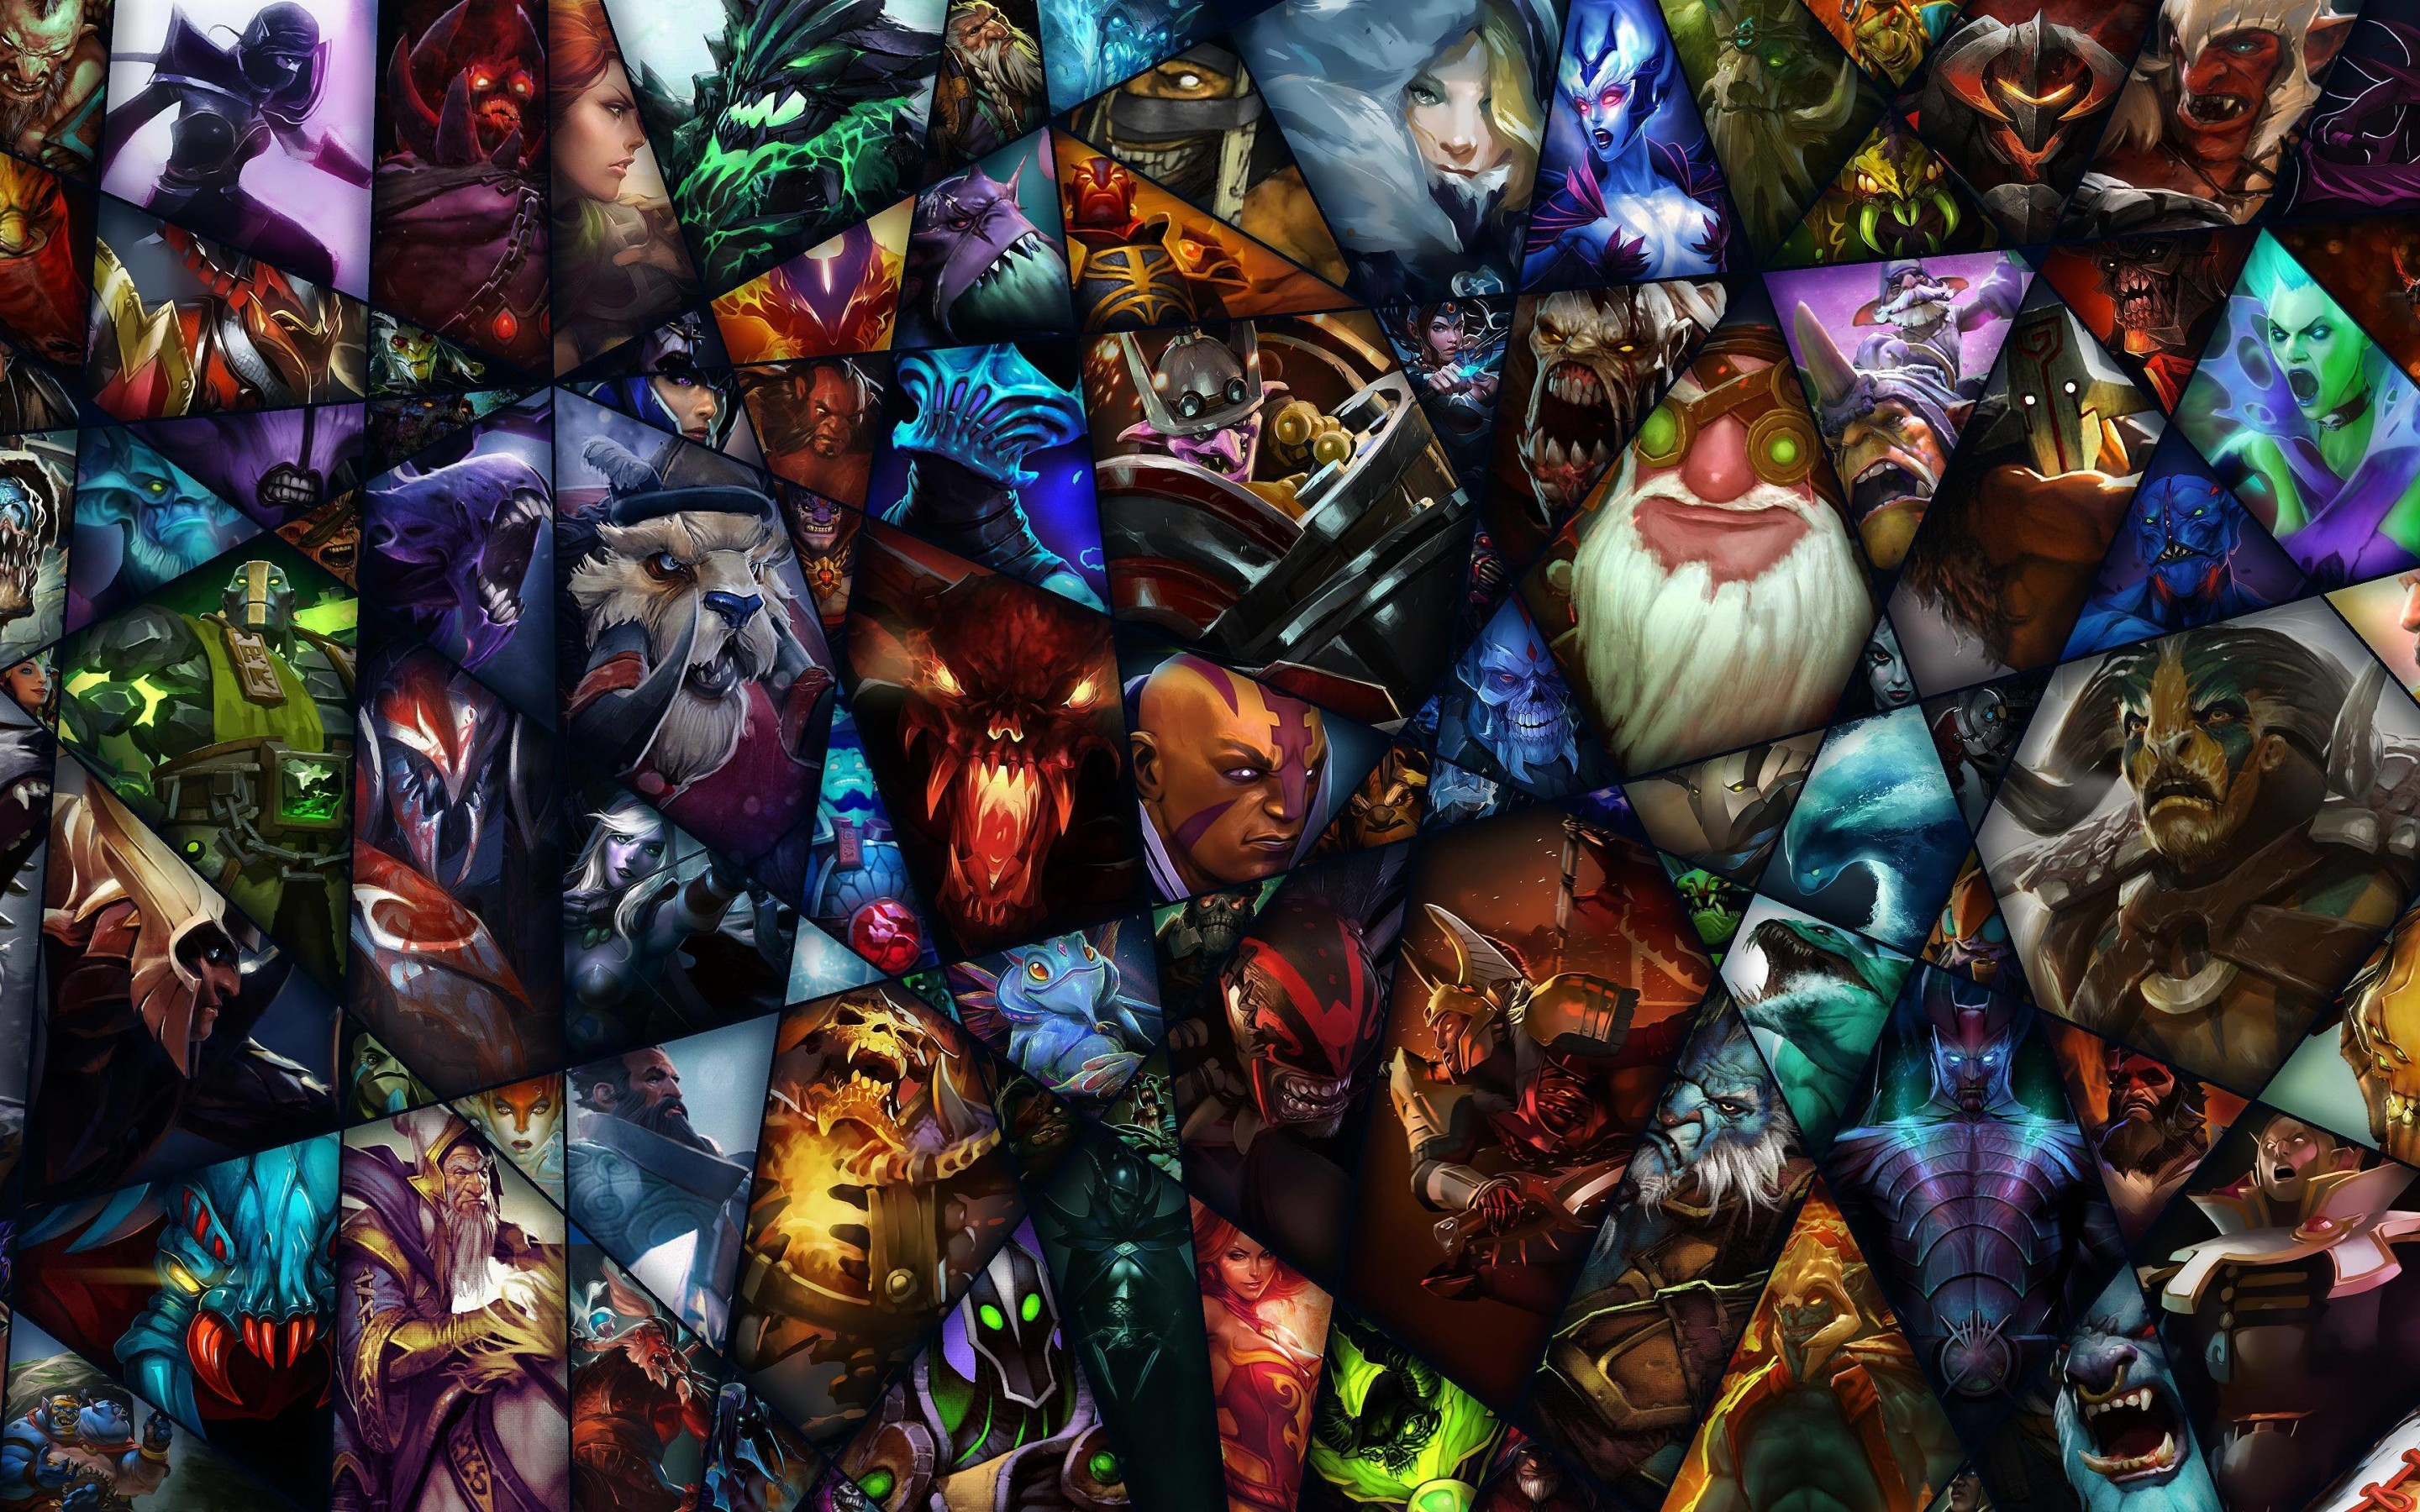 Dota 2 Wallpaper for Desktop 2880x1800